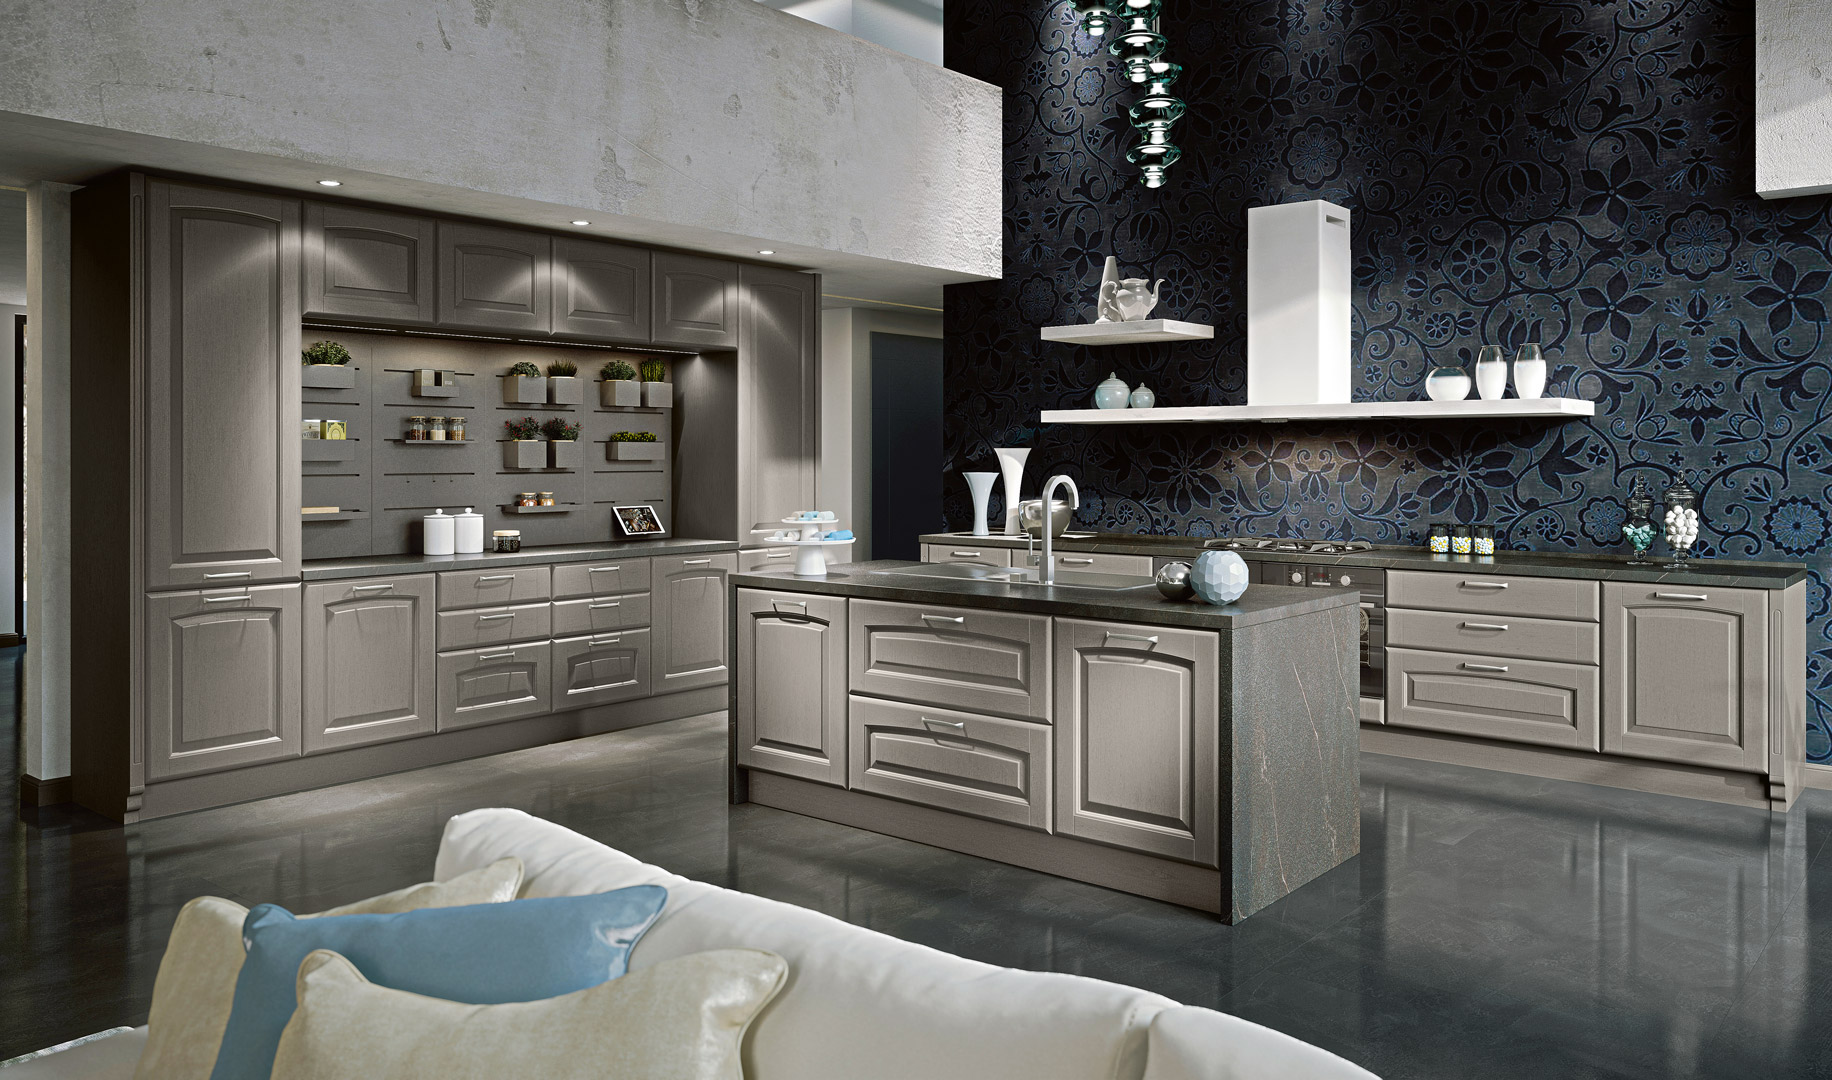 Veronica - Veronica, blends formal authenticity and style with expert craftsmanship and technology. The models proposed oer the ideal solutions for every moment of your daily life. Quality and extreme care for both stylistic and construction details guarantee a timeless object. - Cucine LUBE